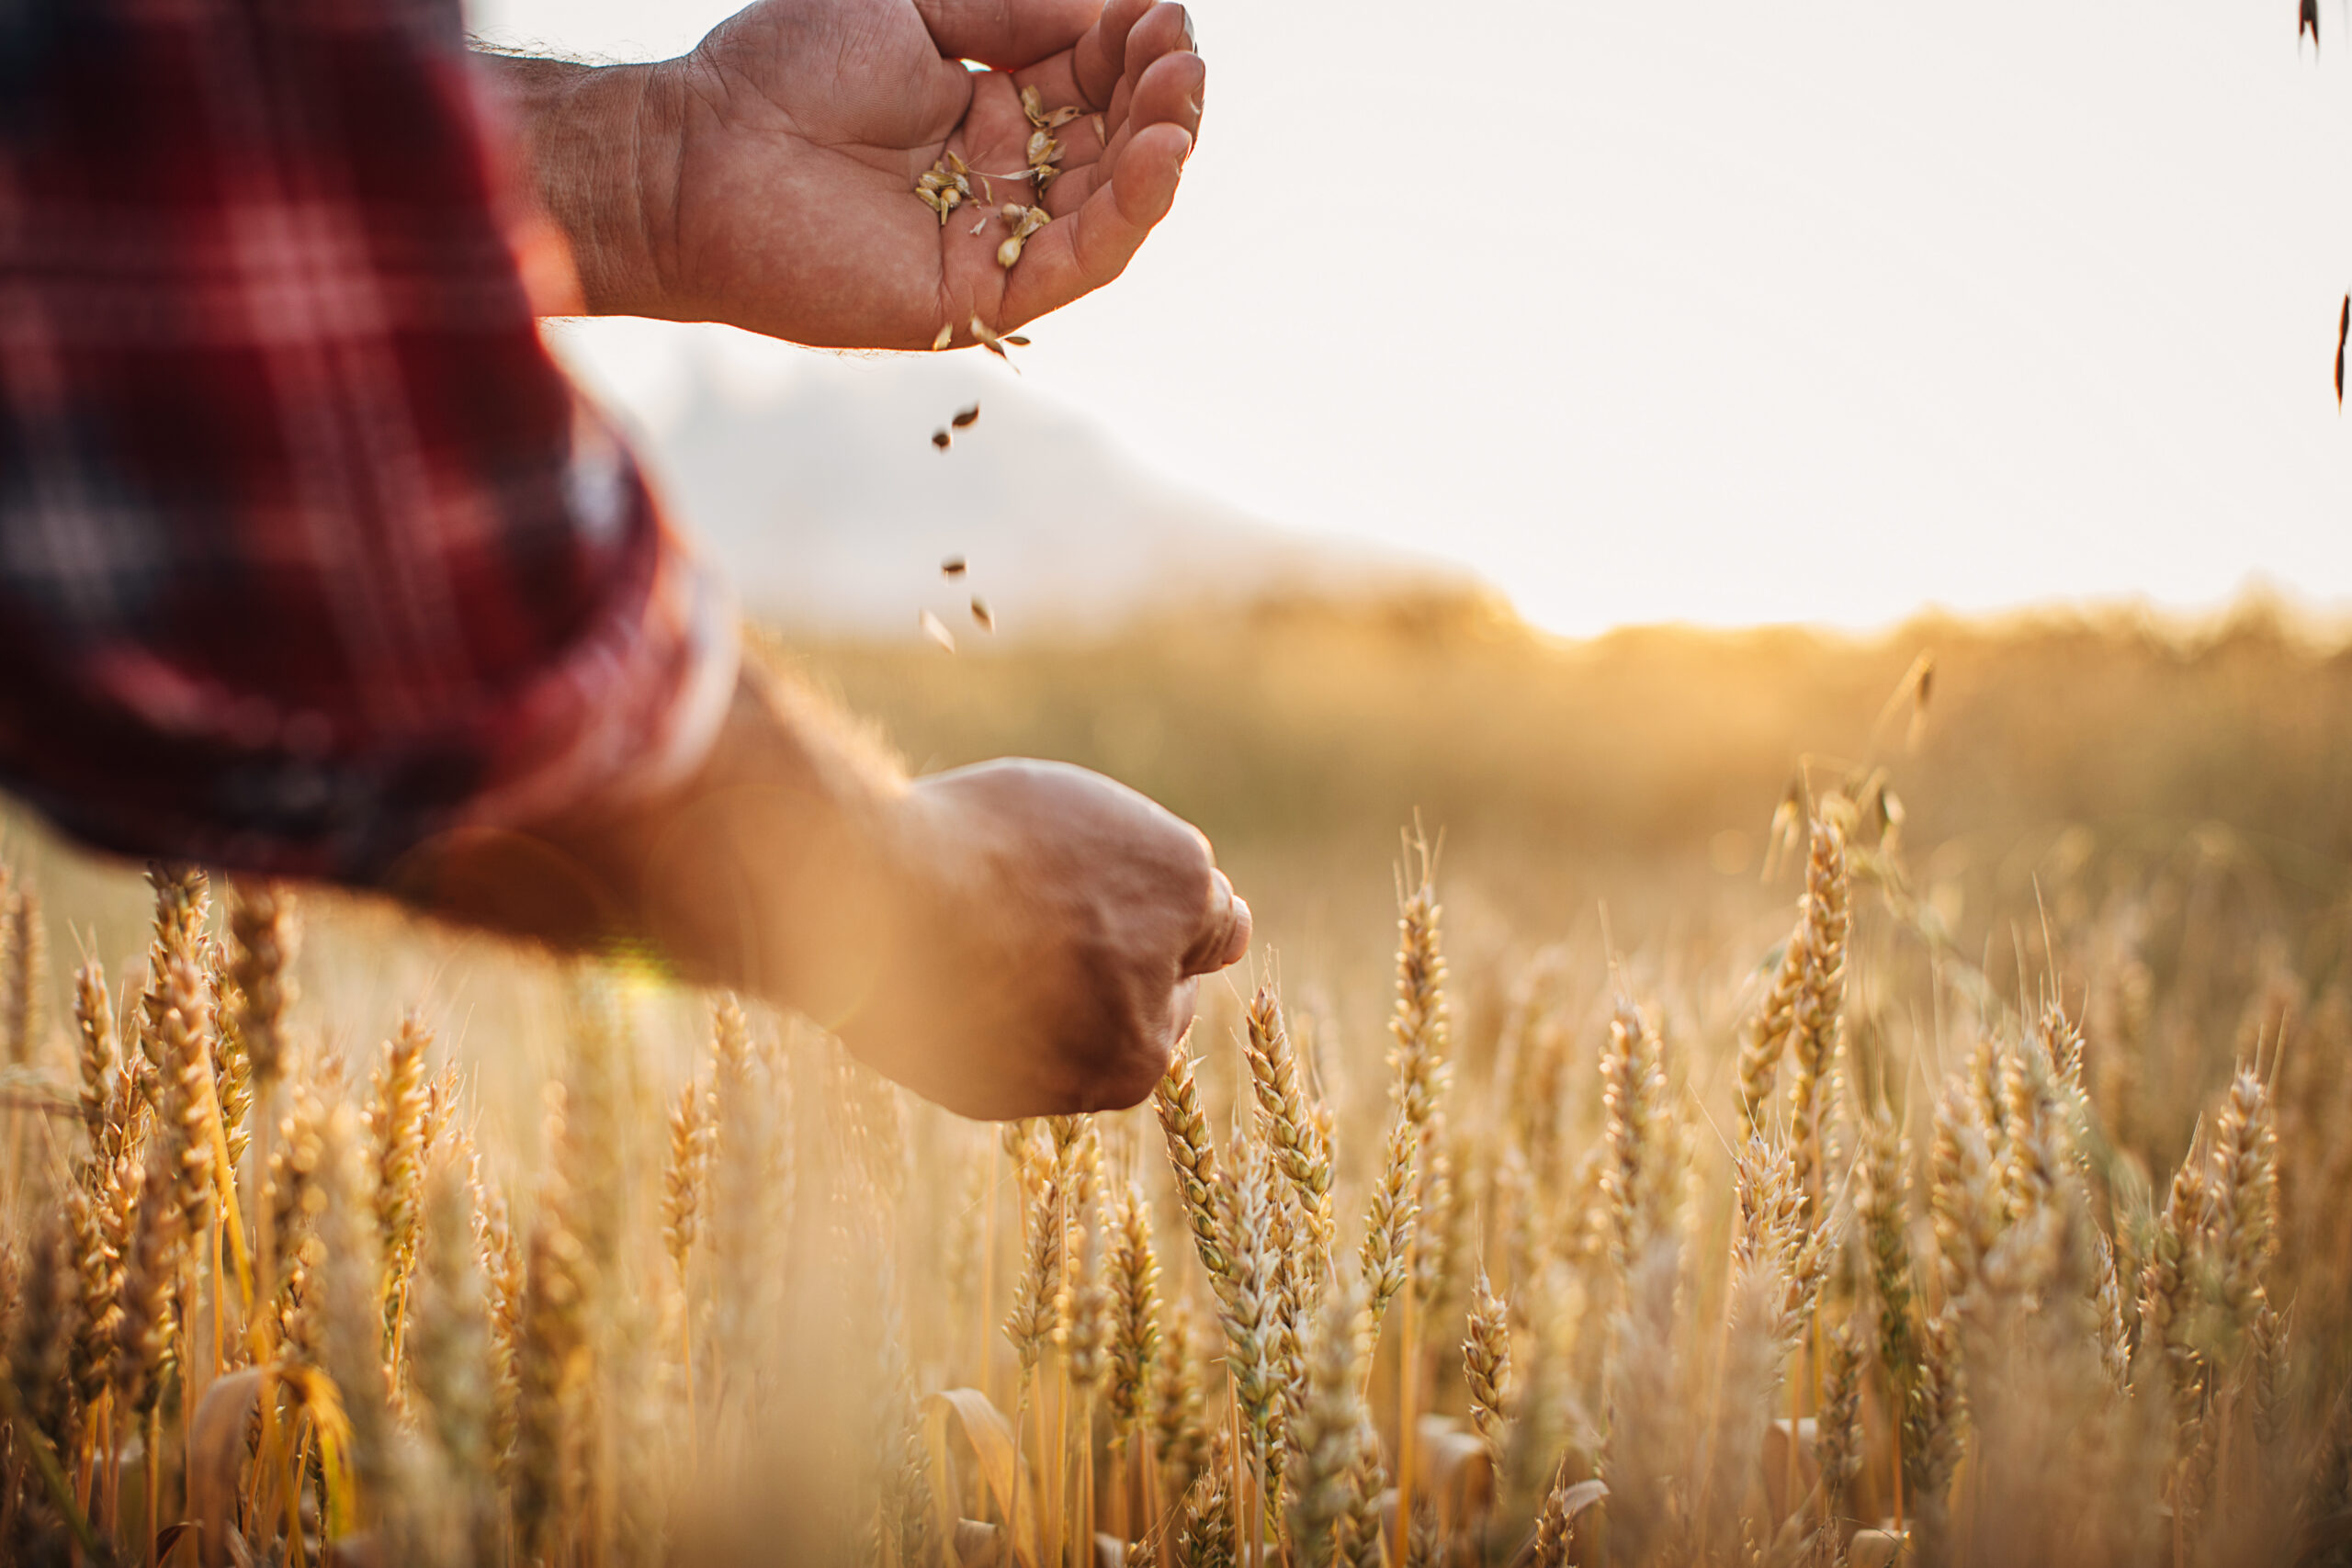 One rancher examining wheat crops